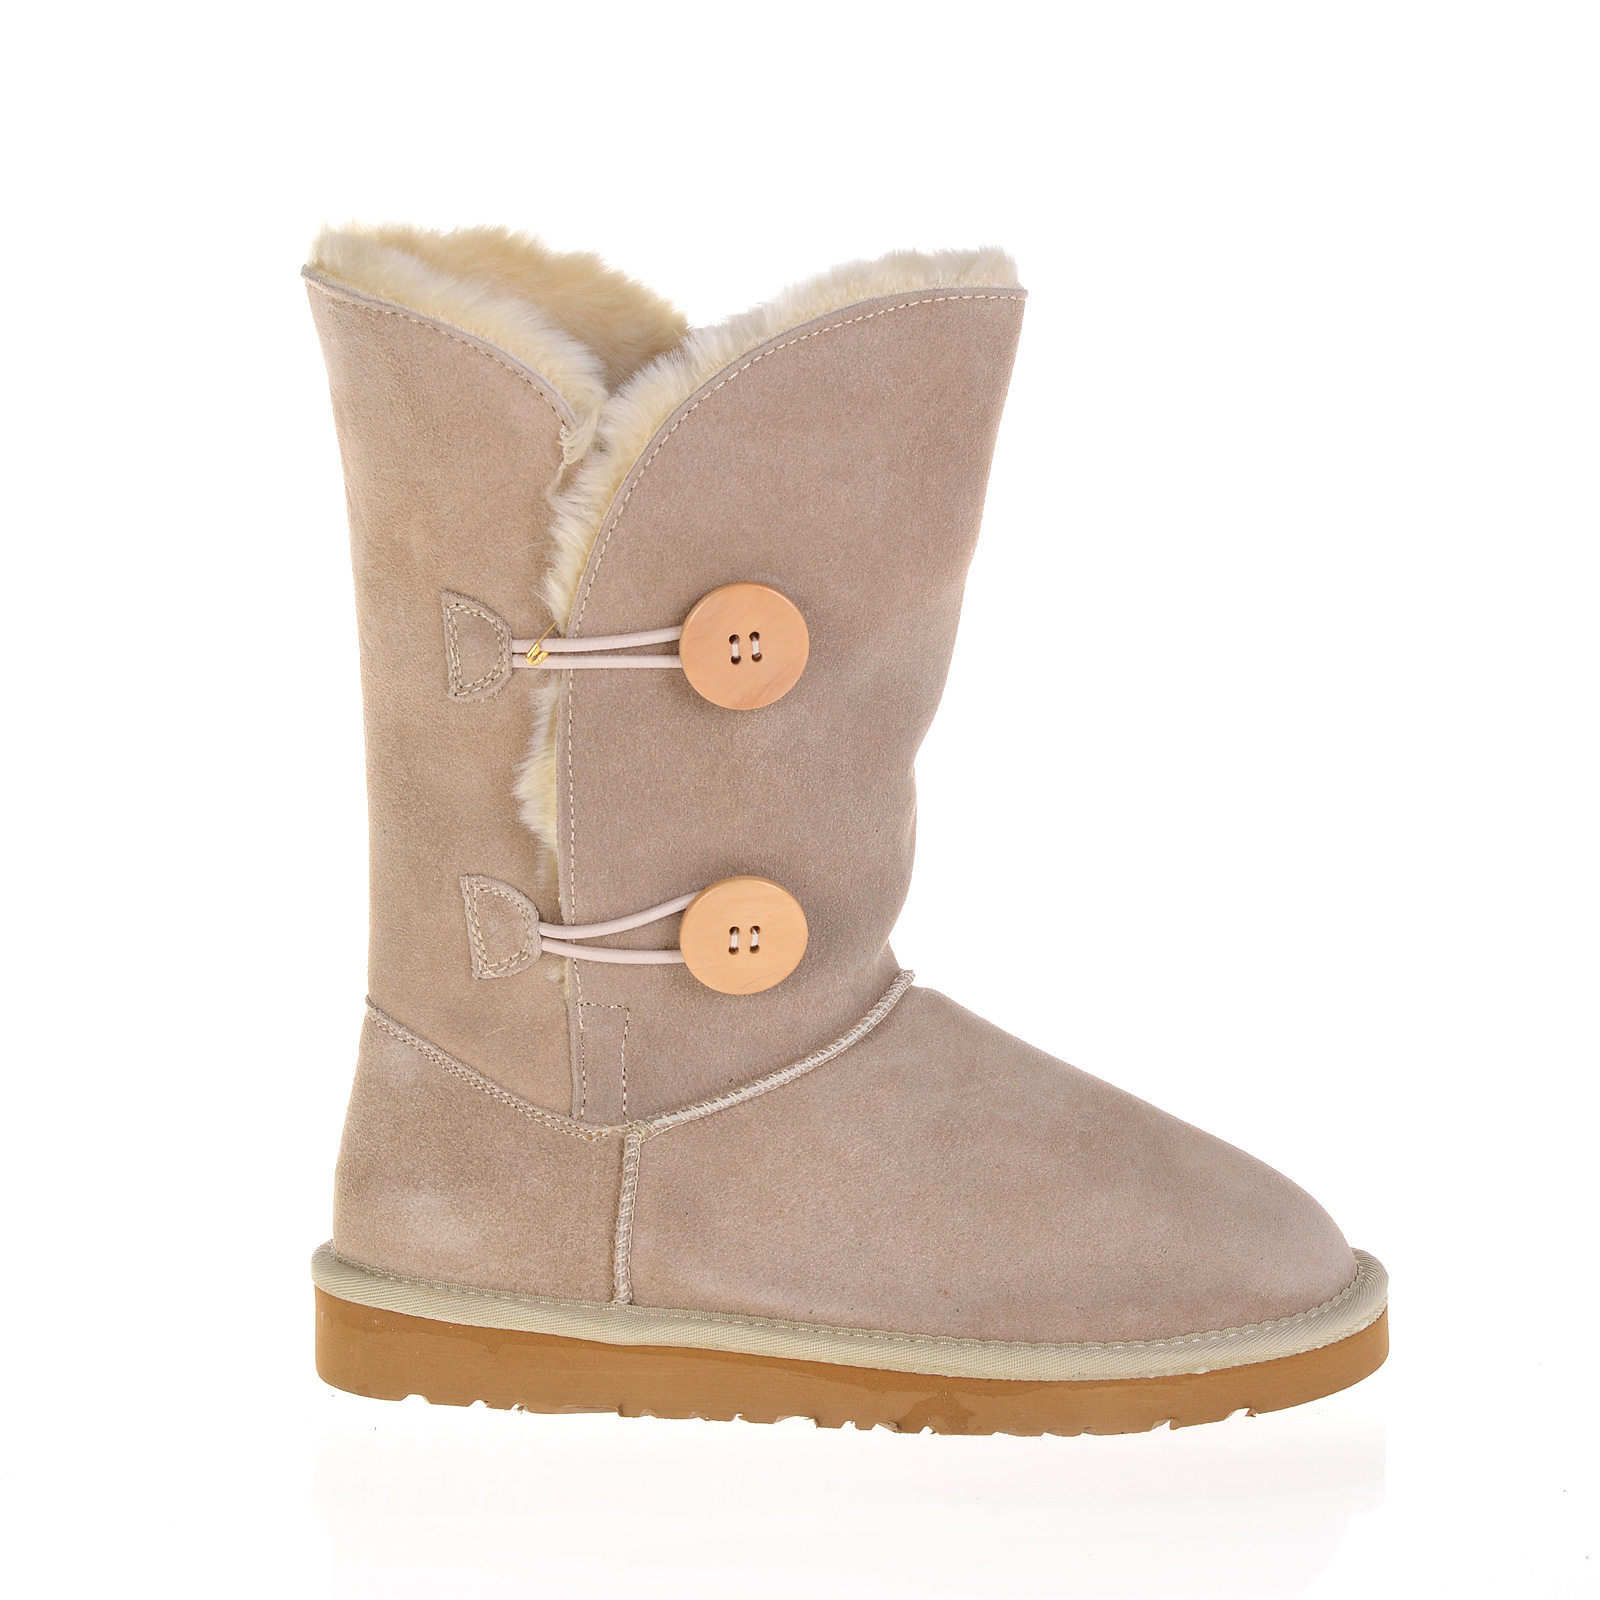 UGG will send you the missing piece, free of charge. 9. Enjoy free shipping. Opt for Standard UPS Ground or USPS Priority, and you can get free shipping on your UGG order. Unlike many other online retailers, UGG does not require a minimum purchase for free shipping. Fave UGG on willbust.ml